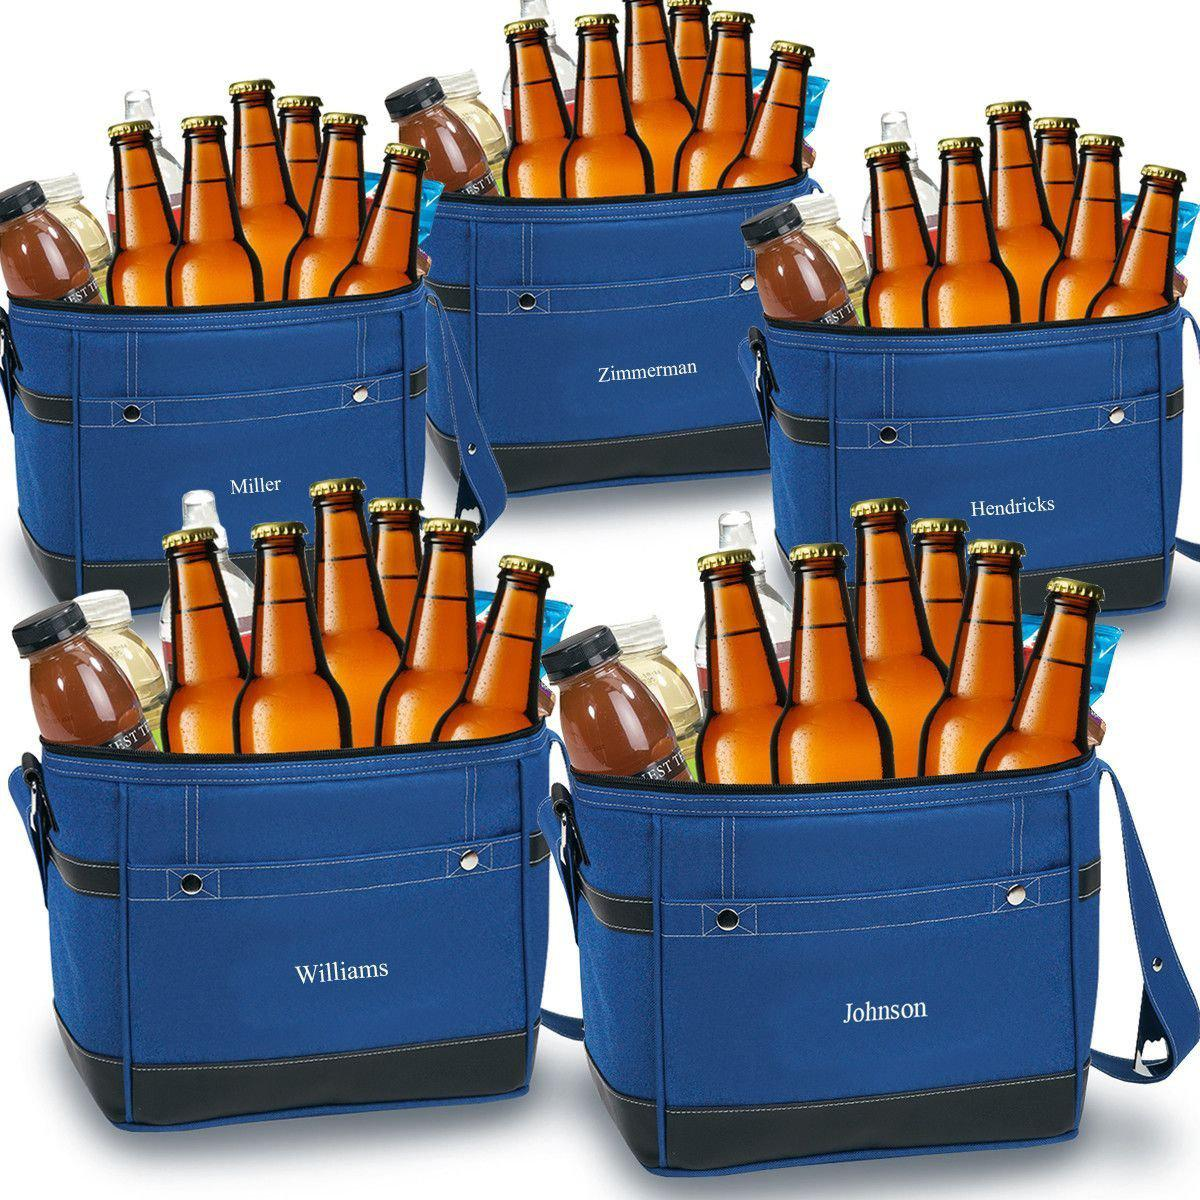 Groomsmen Gift Wedding Attendant Sports Events Monogrammed Personalized Insulated ROYAL 12 Can Cooler Tote Beach